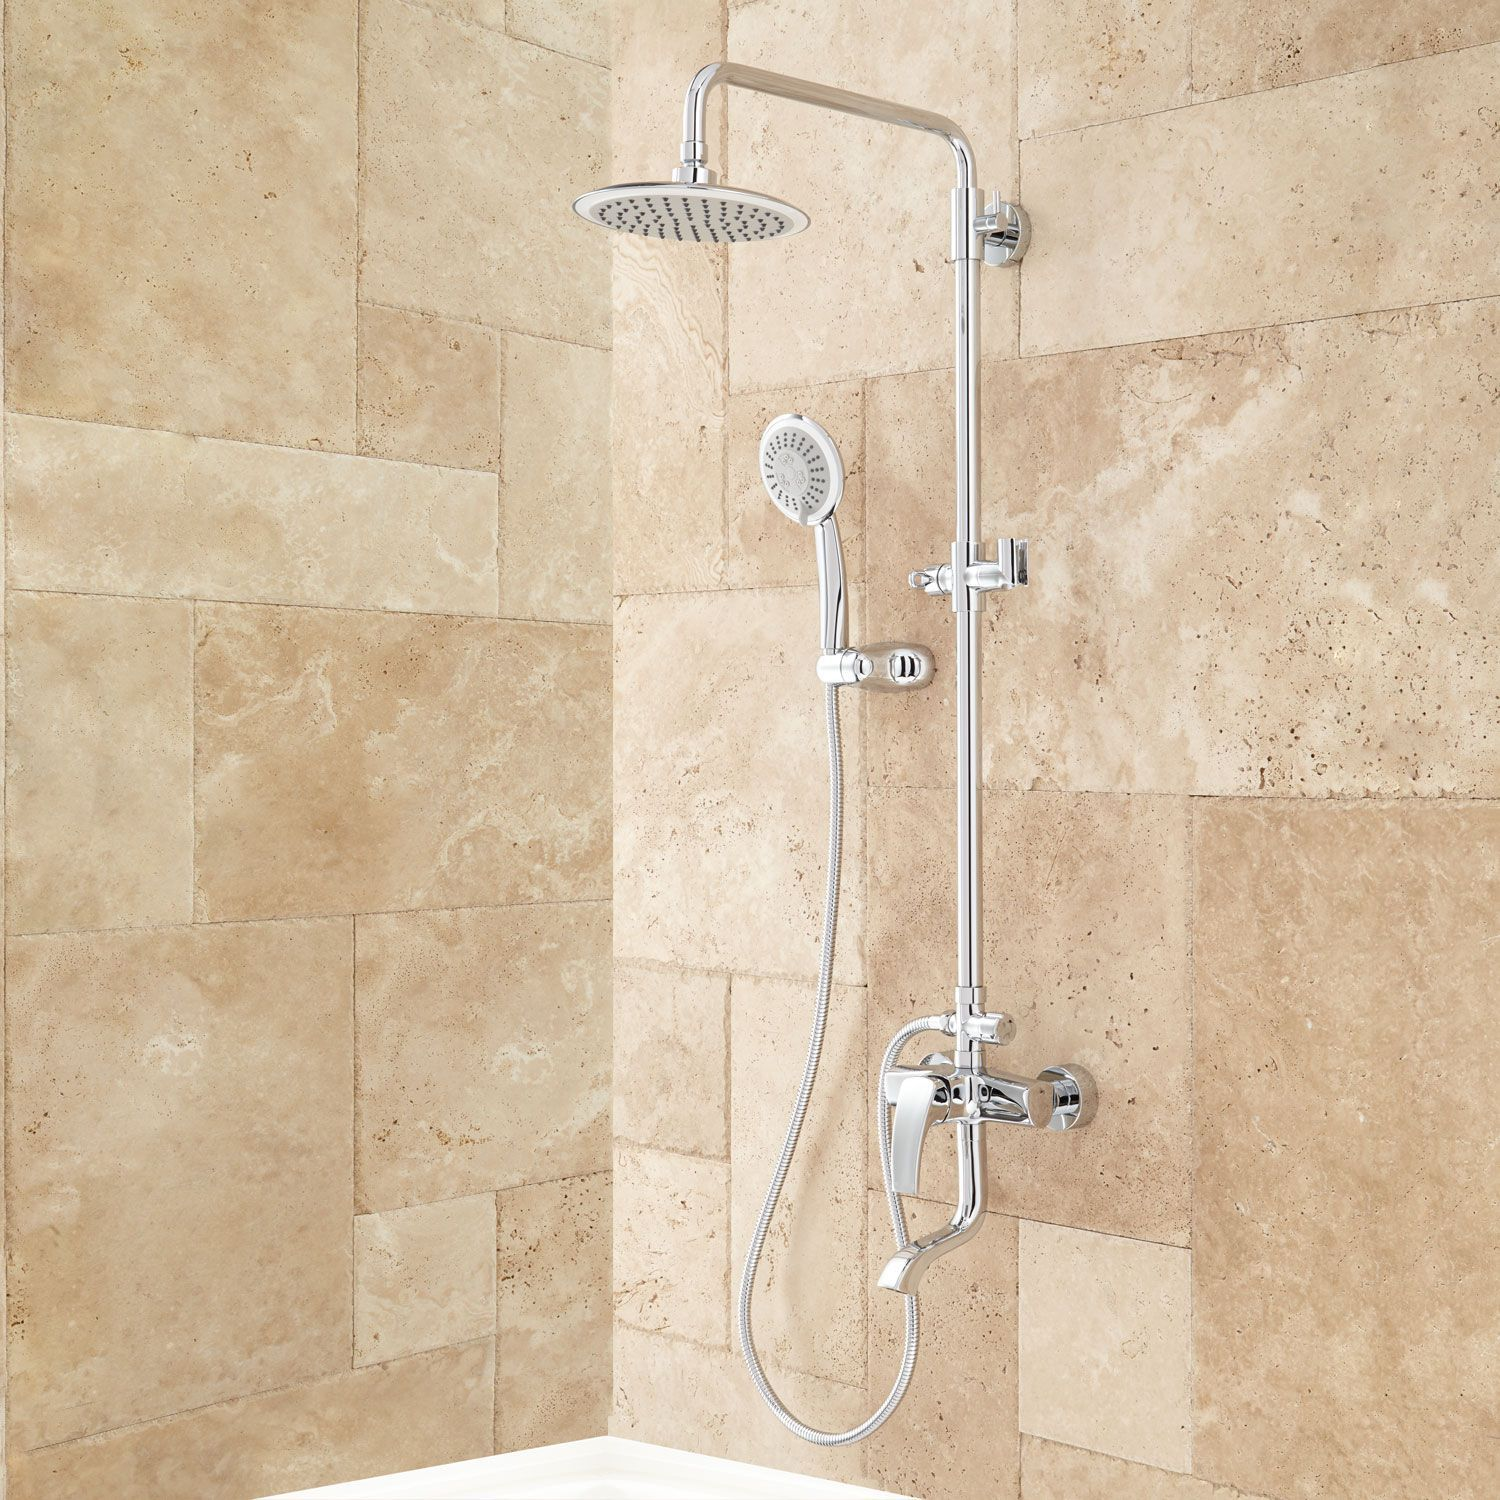 Exposed Pipe Shower System With Tub Faucet.Pin On Bath Project